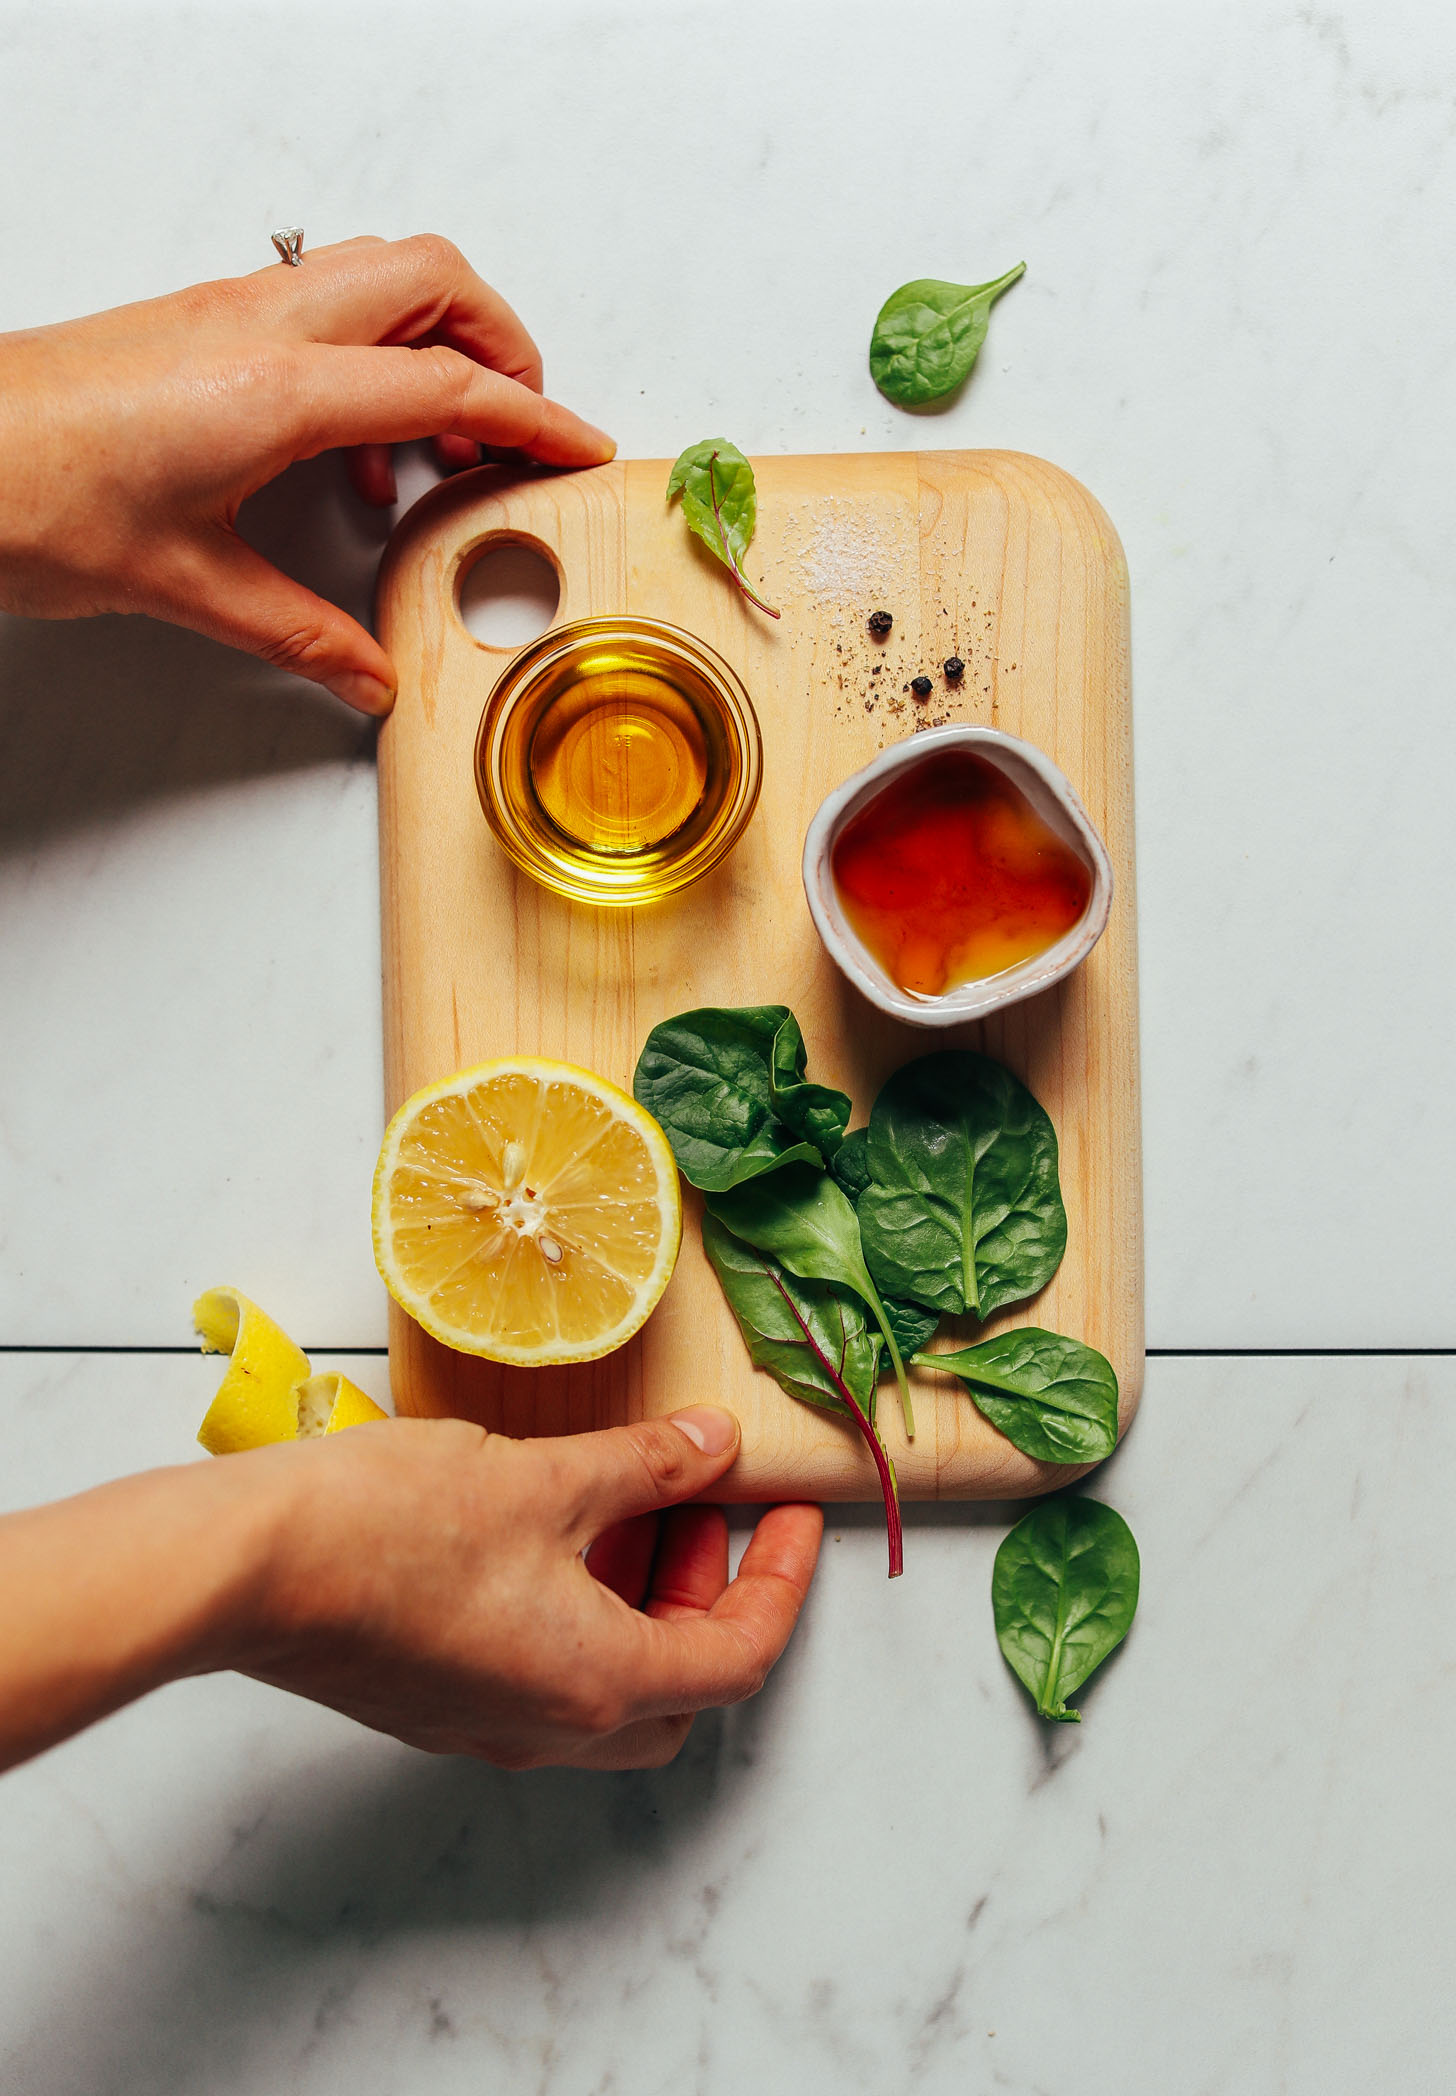 Cutting board with ingredients for making homemade Lemon Vinaigrette